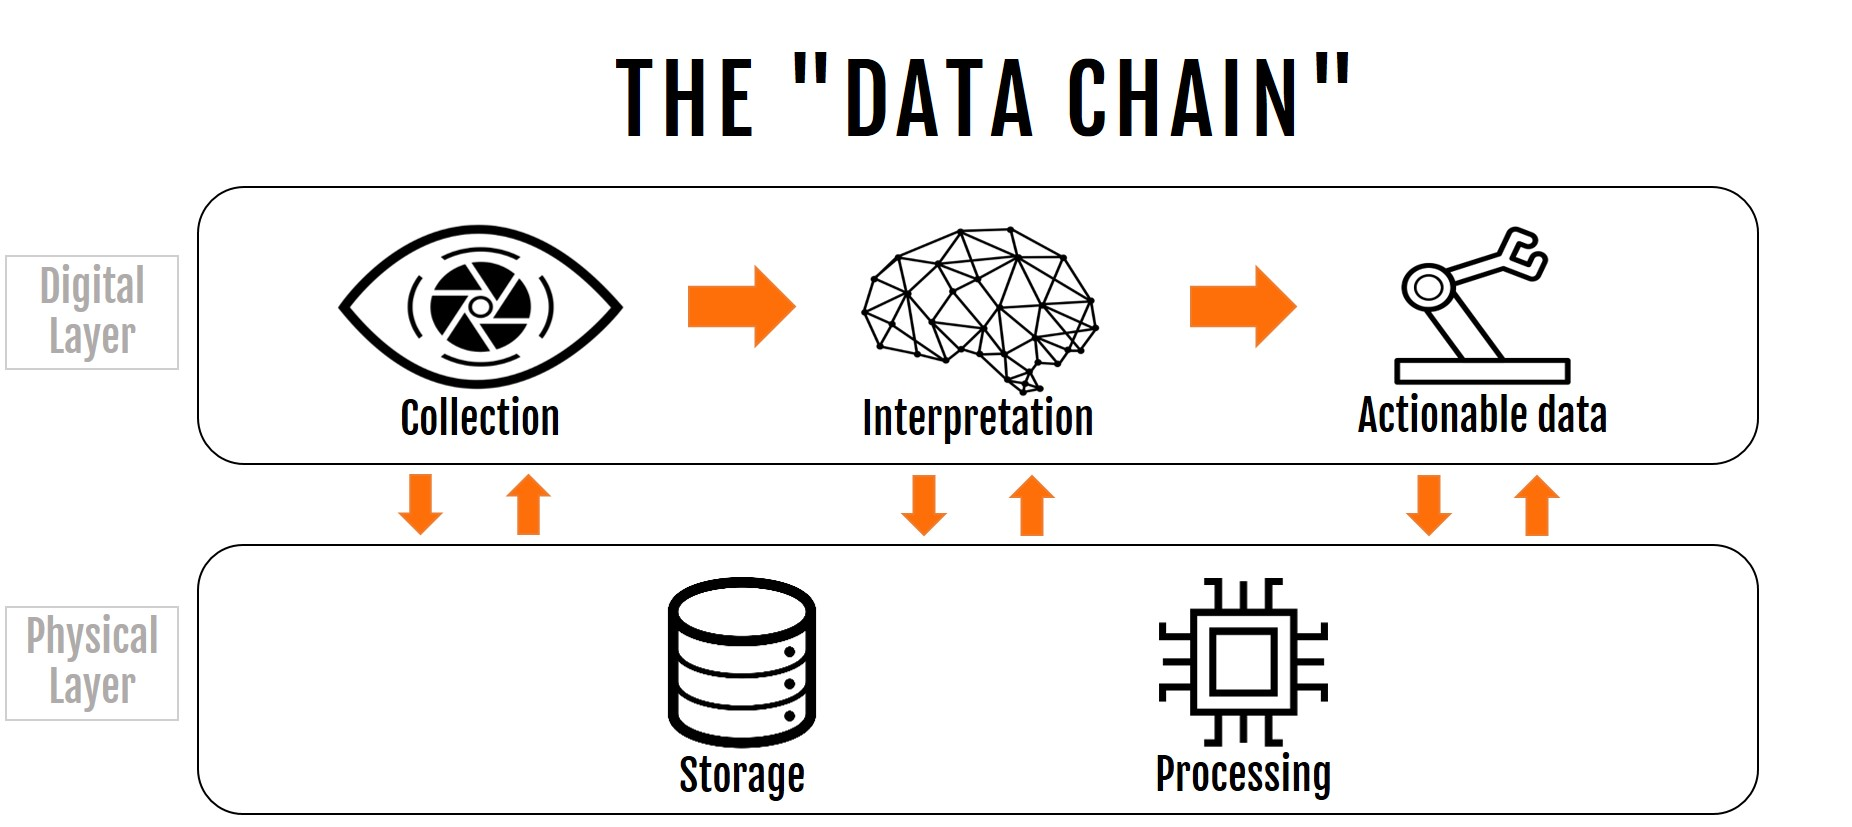 2-the-data-chain-3_no-logo